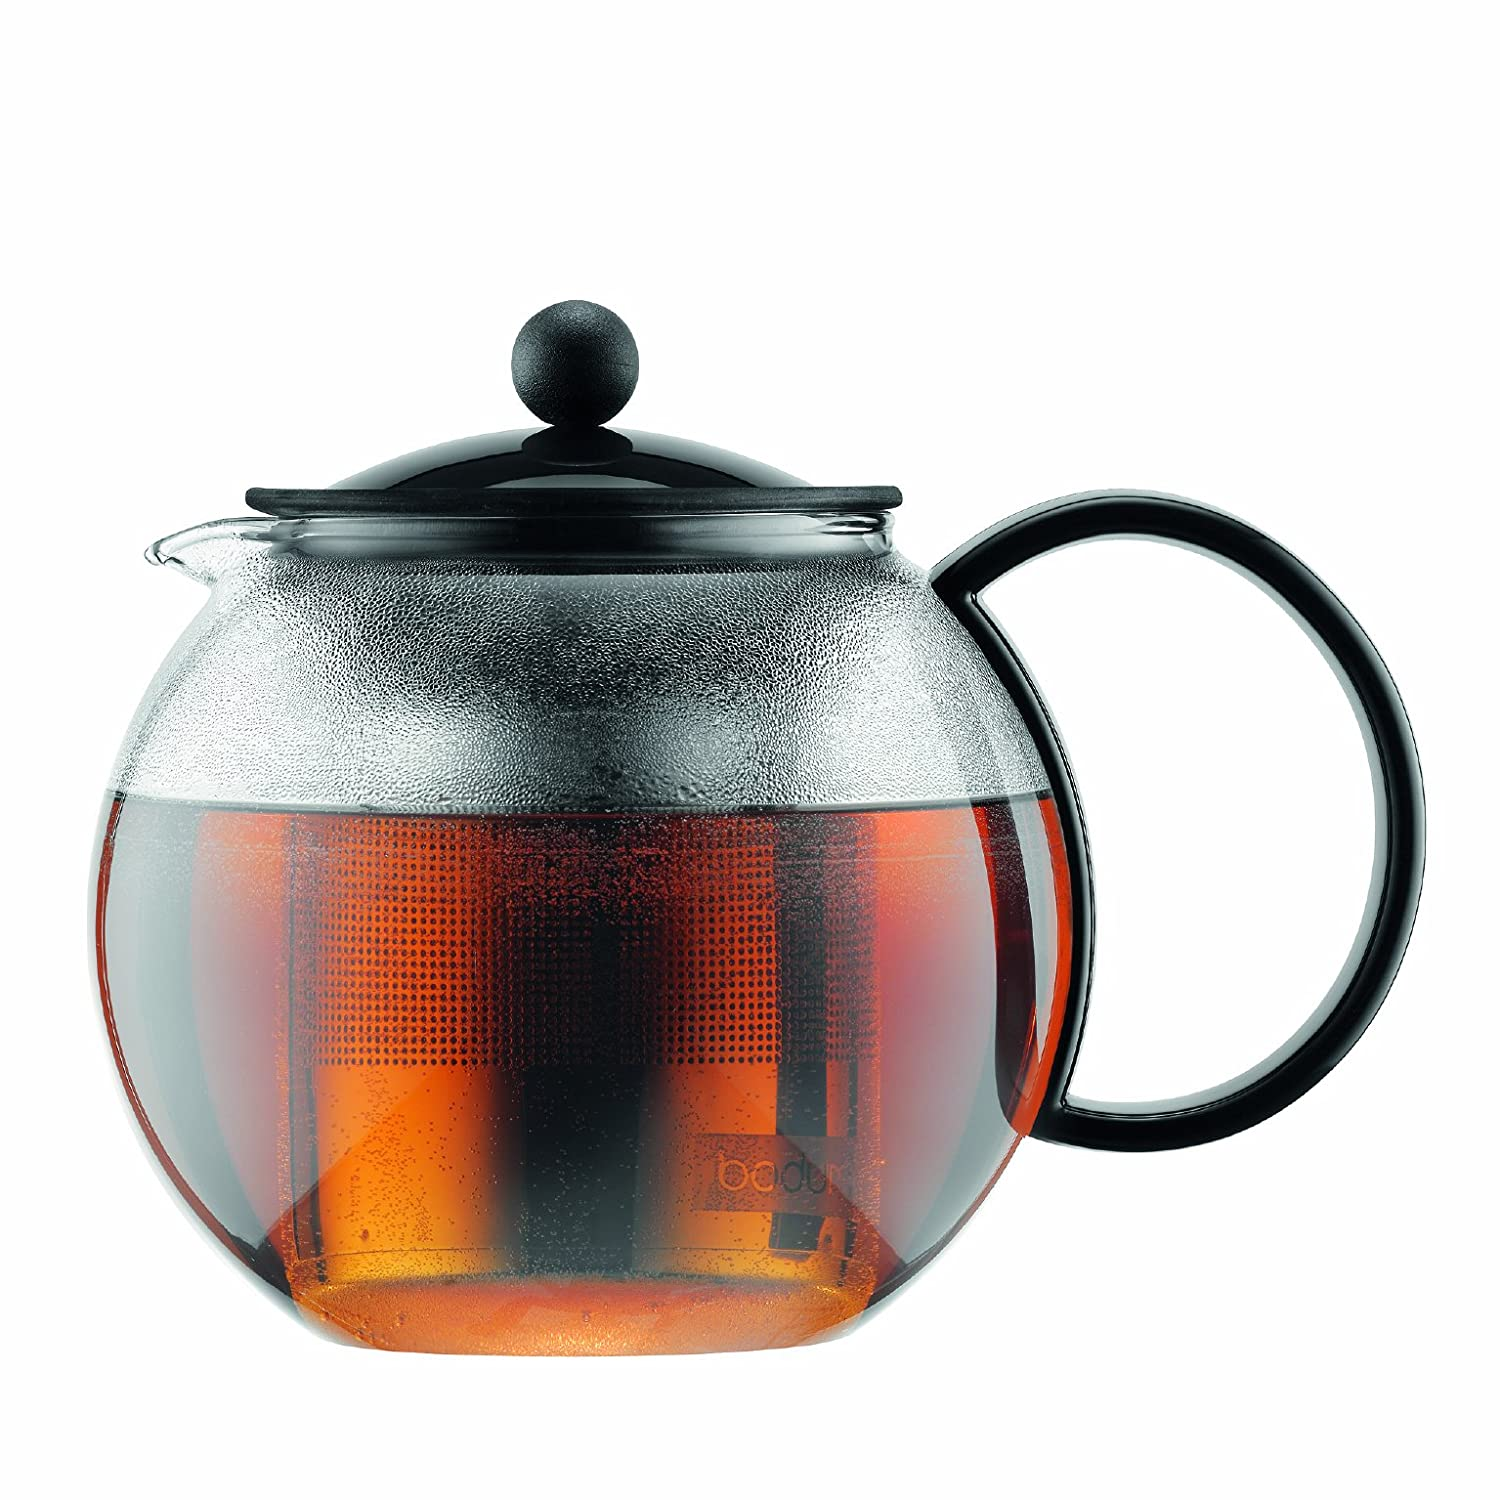 Bodum Assam Tea Press with Stainless Steel Filter, 34-Ounce 1805-01US